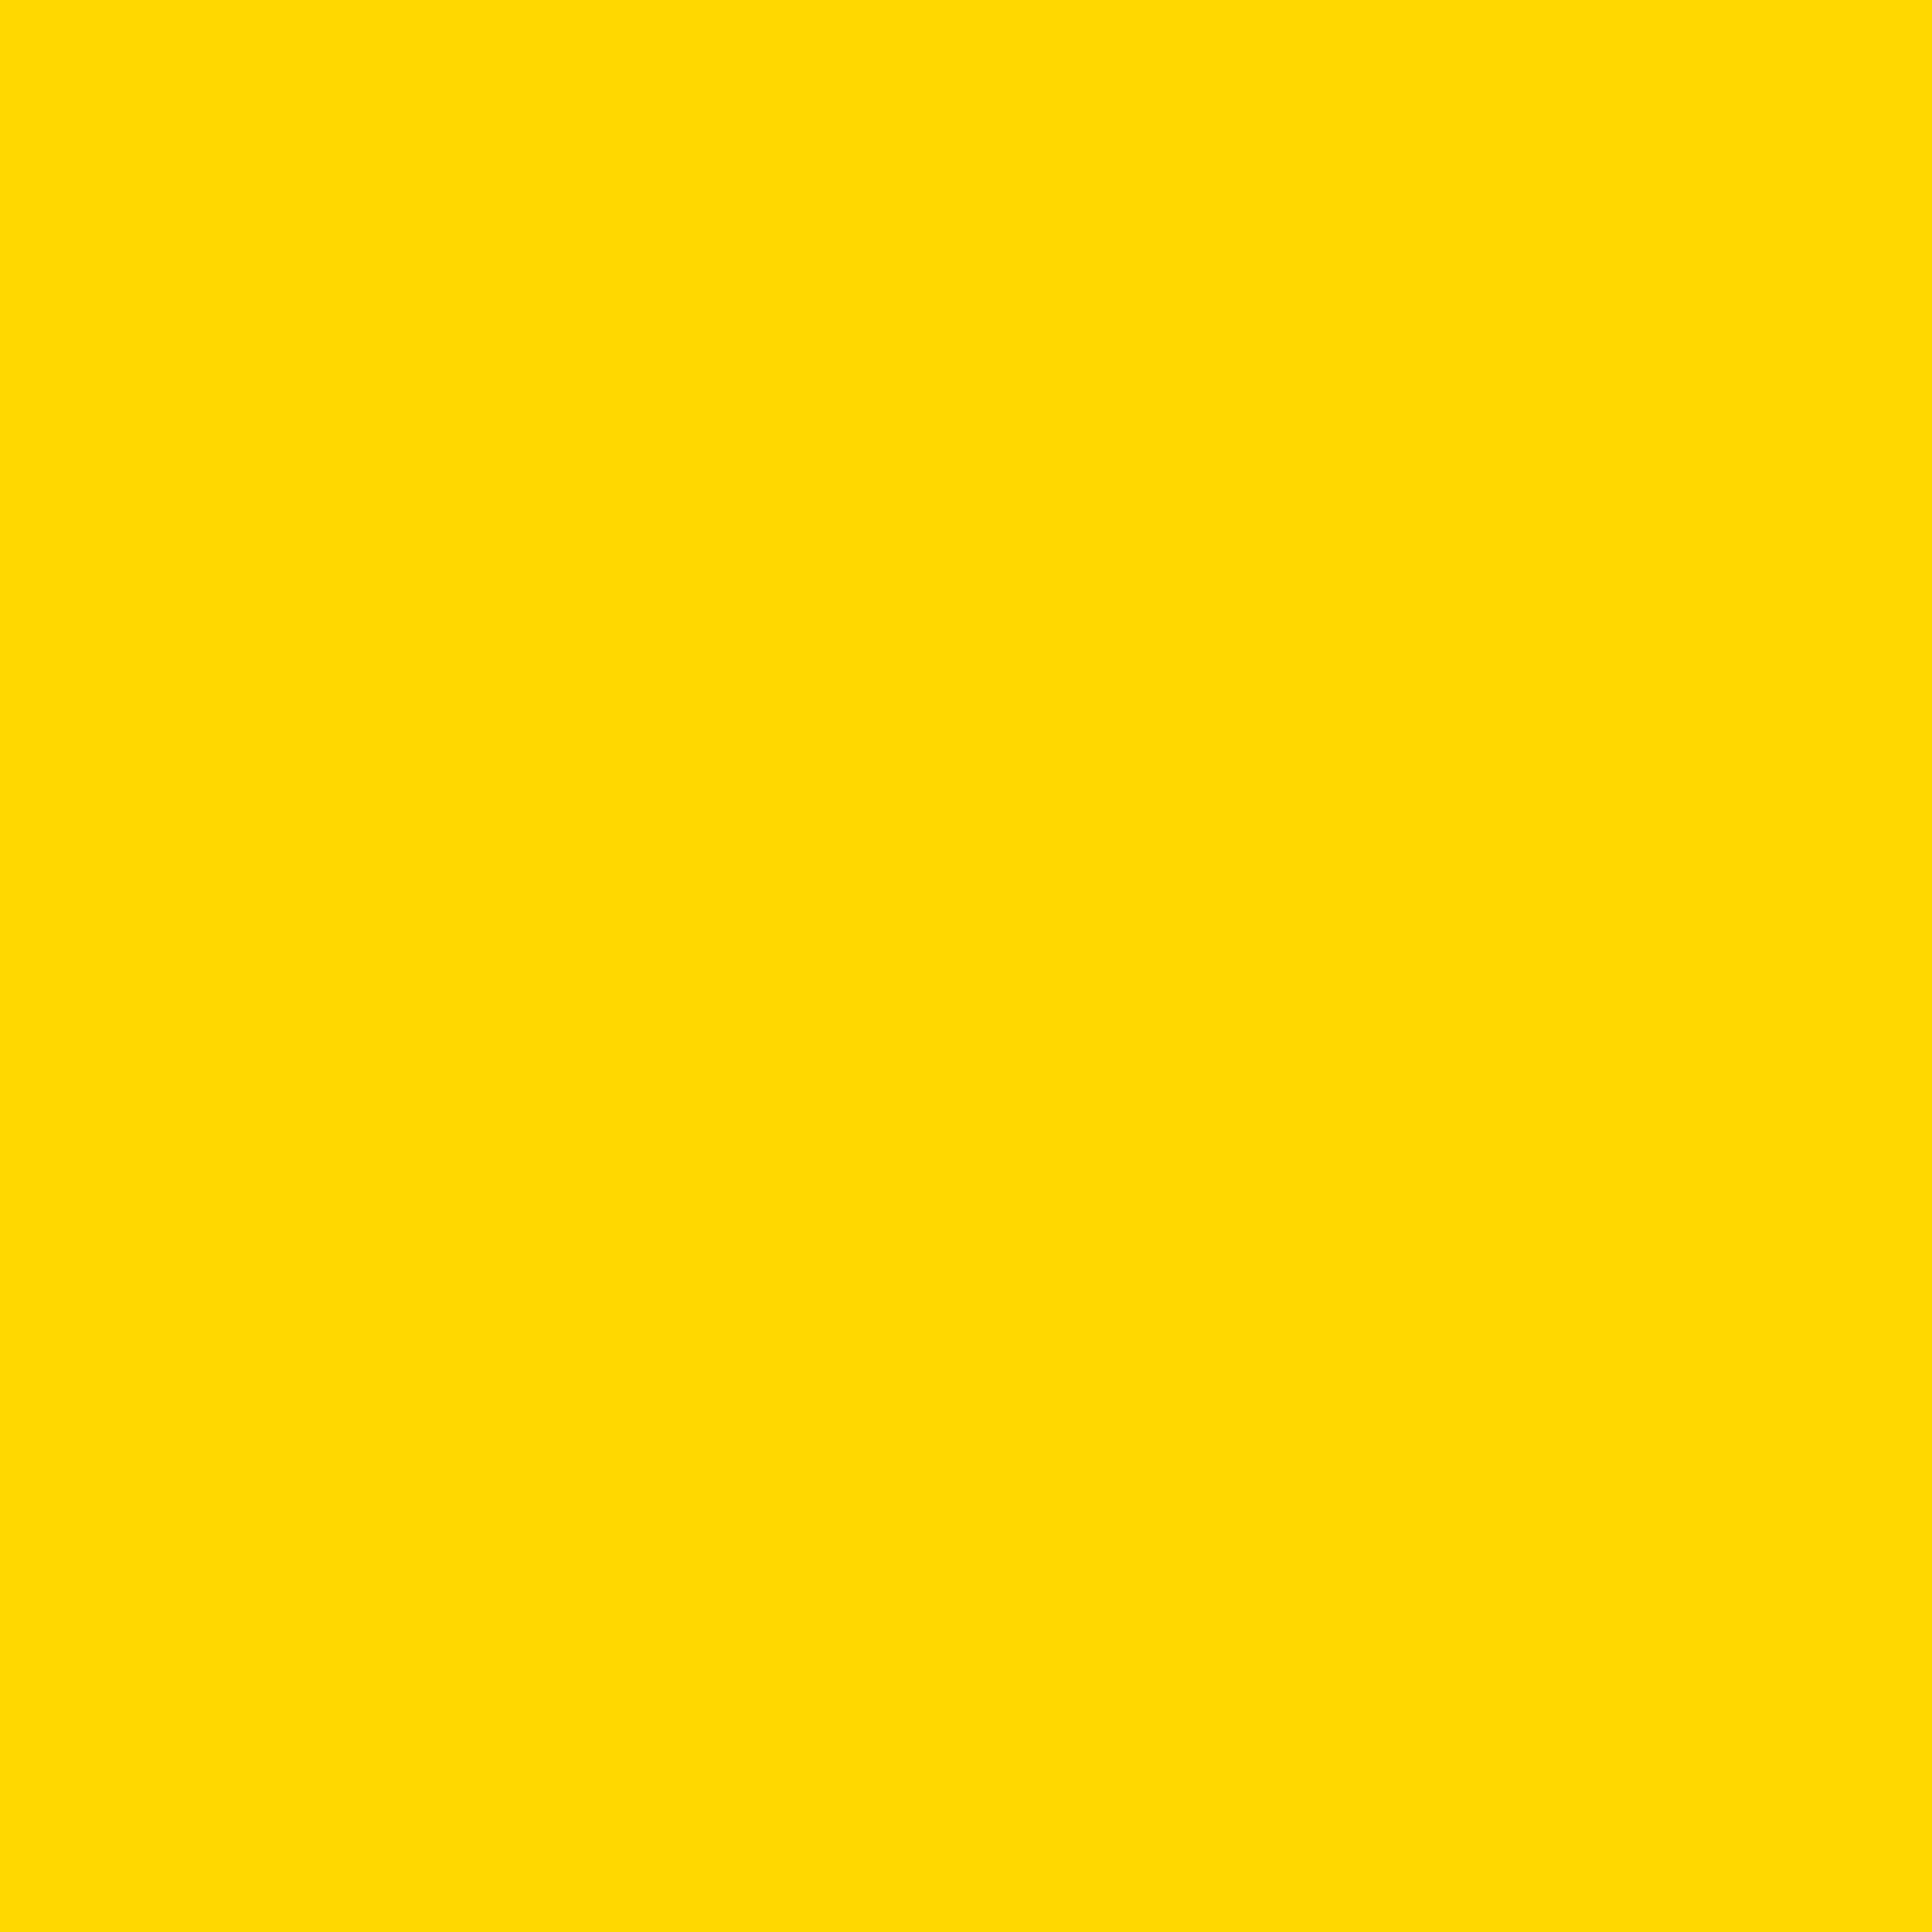 2732x2732 School Bus Yellow Solid Color Background